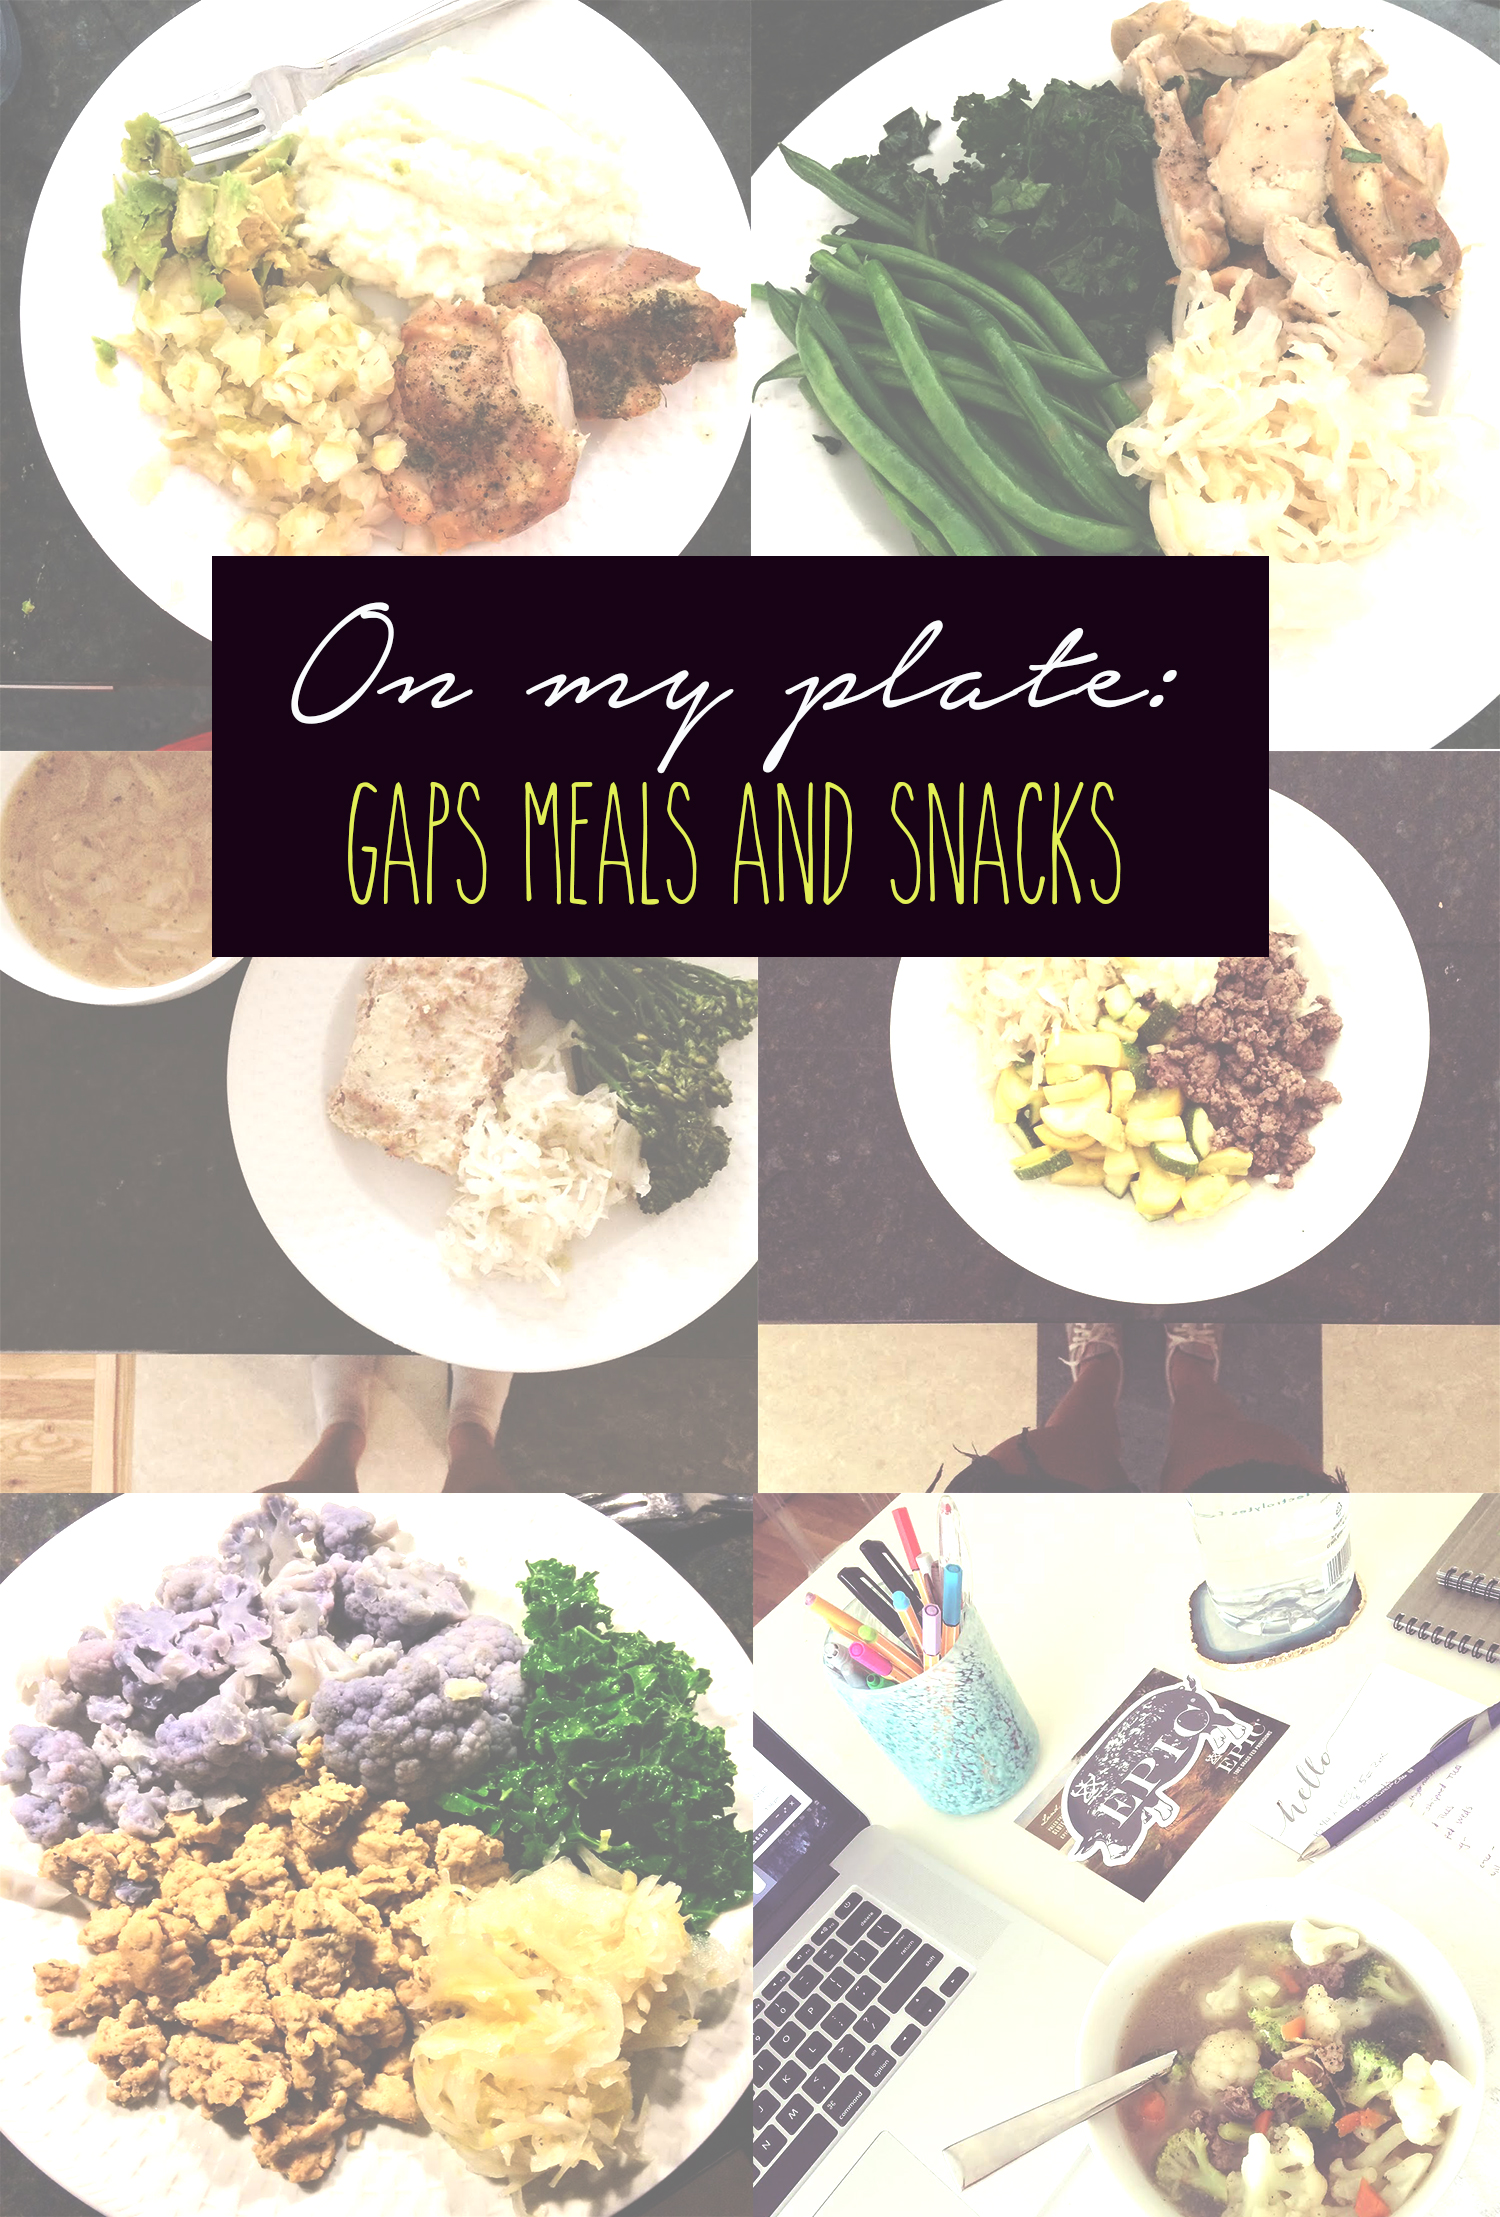 GAPS meals and snack ideas